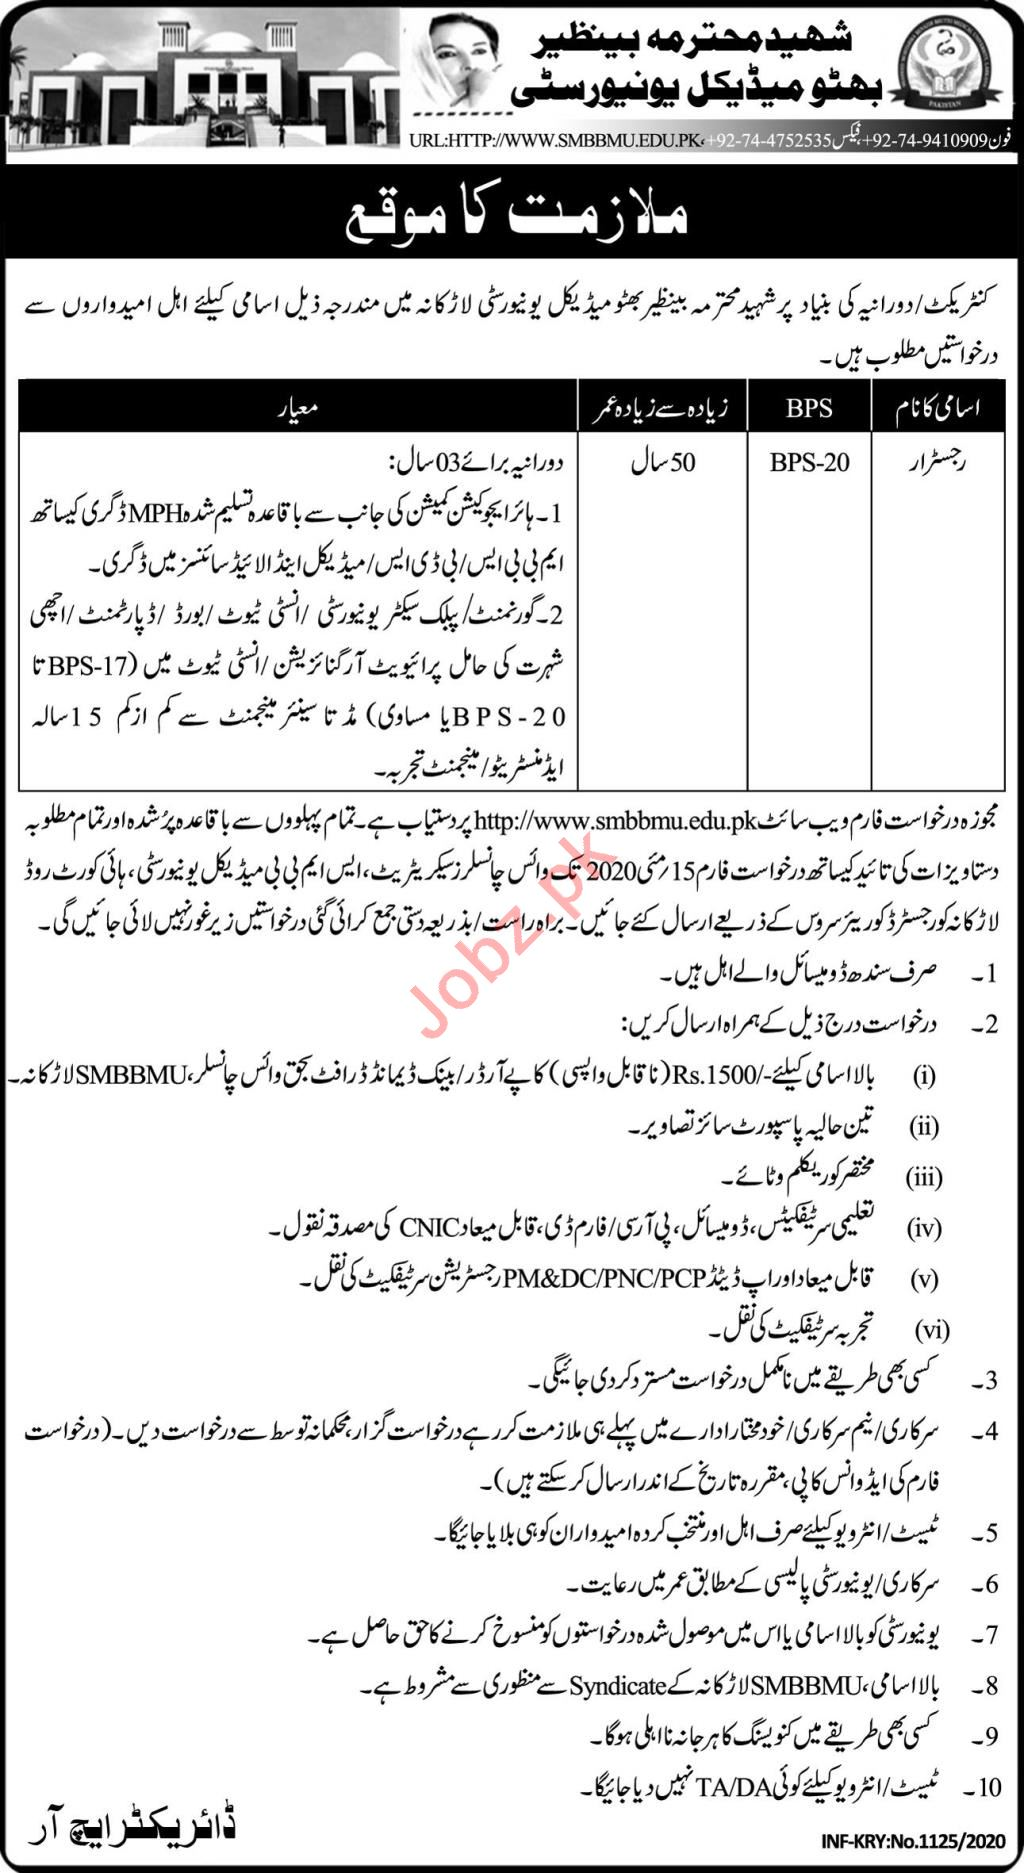 Shaheed Mohtarma Benazir Bhutto Medical University Jobs 2020